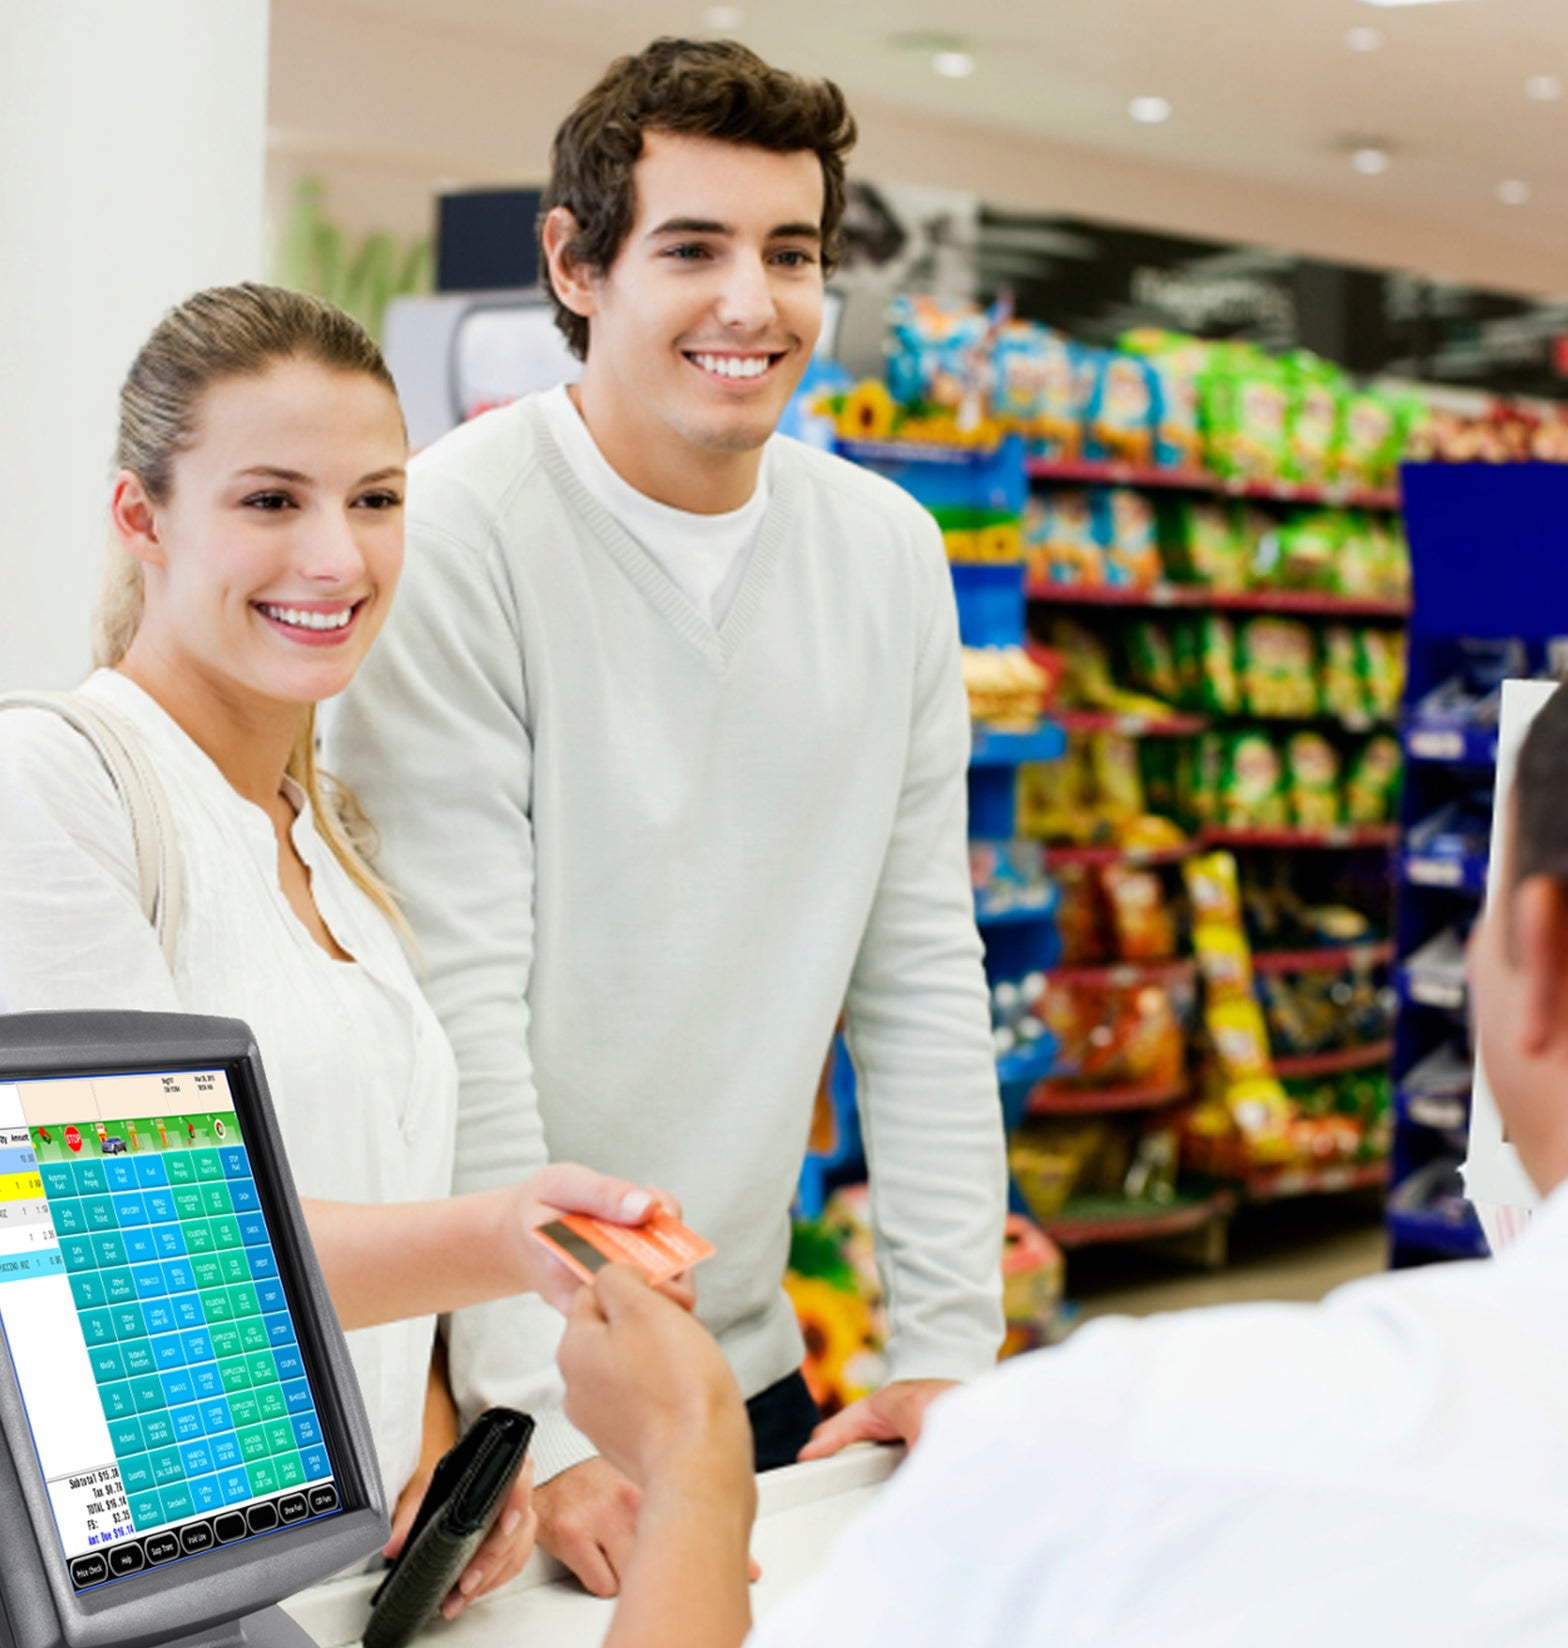 couple paying inside convenience store